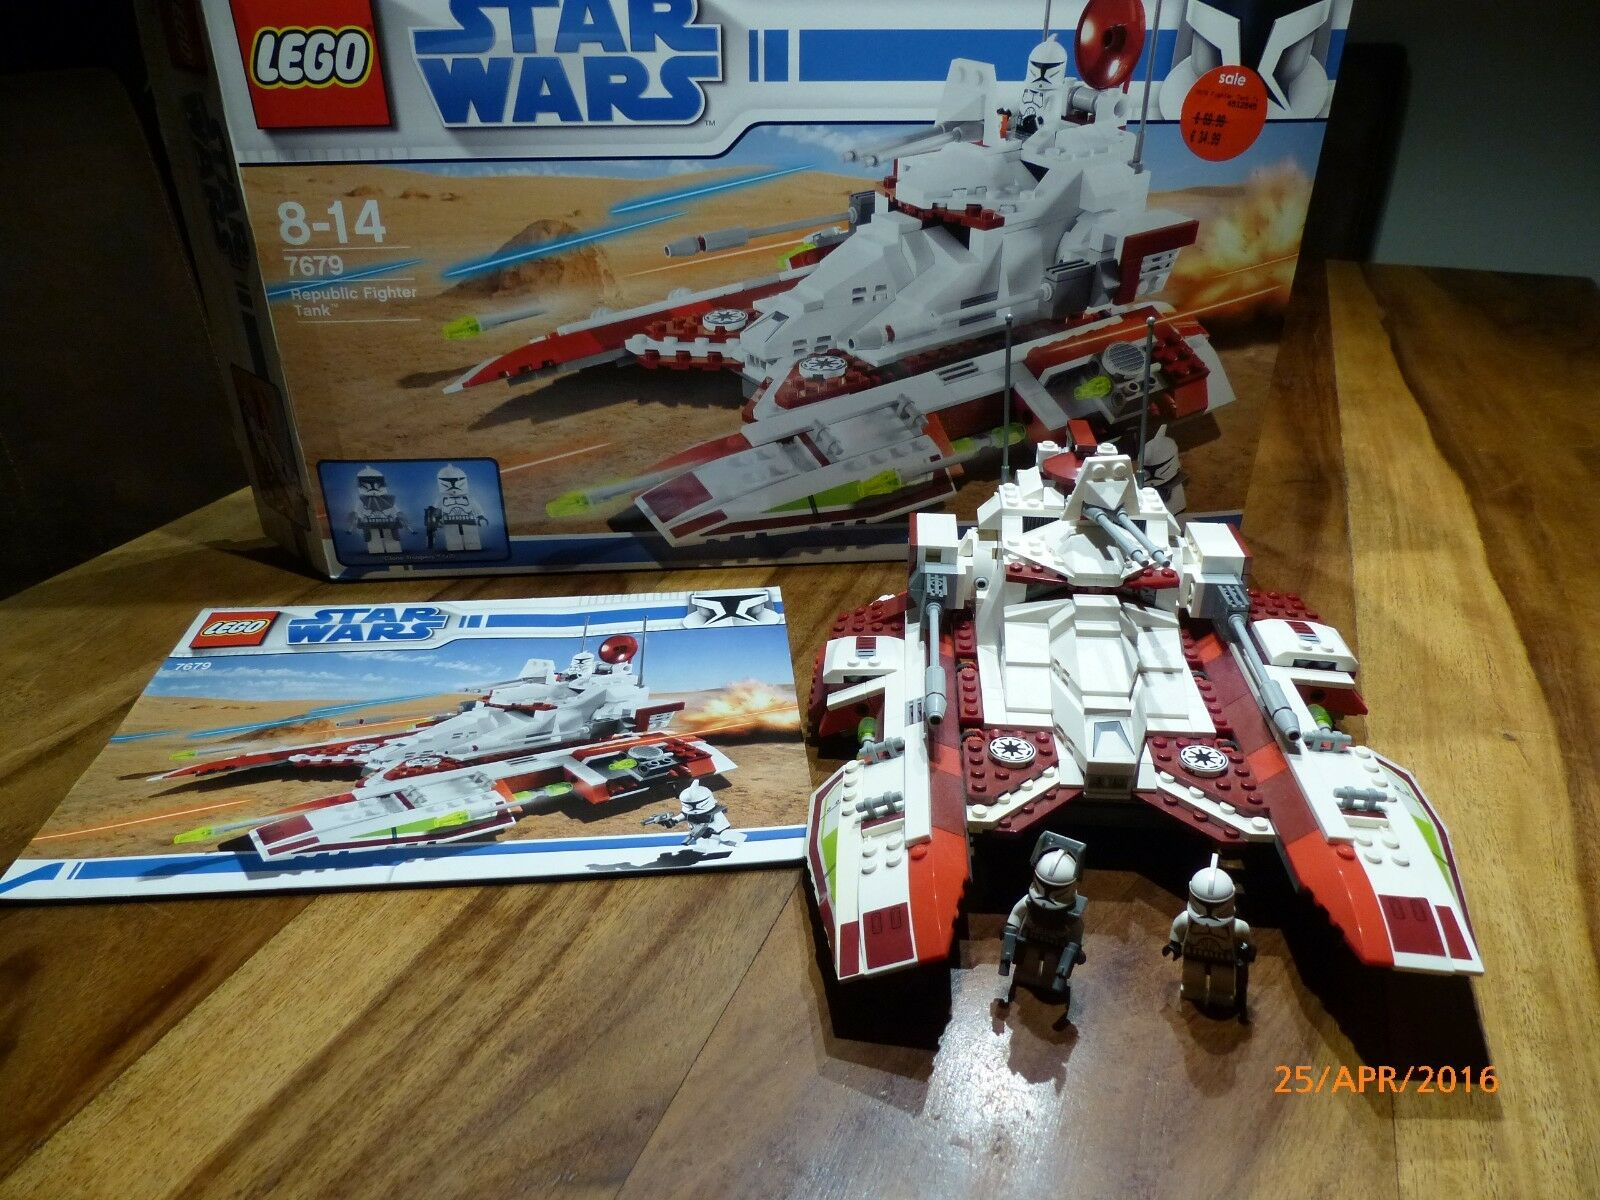 LEGO® Star Wars™ 7679 Republic Fighter Tank